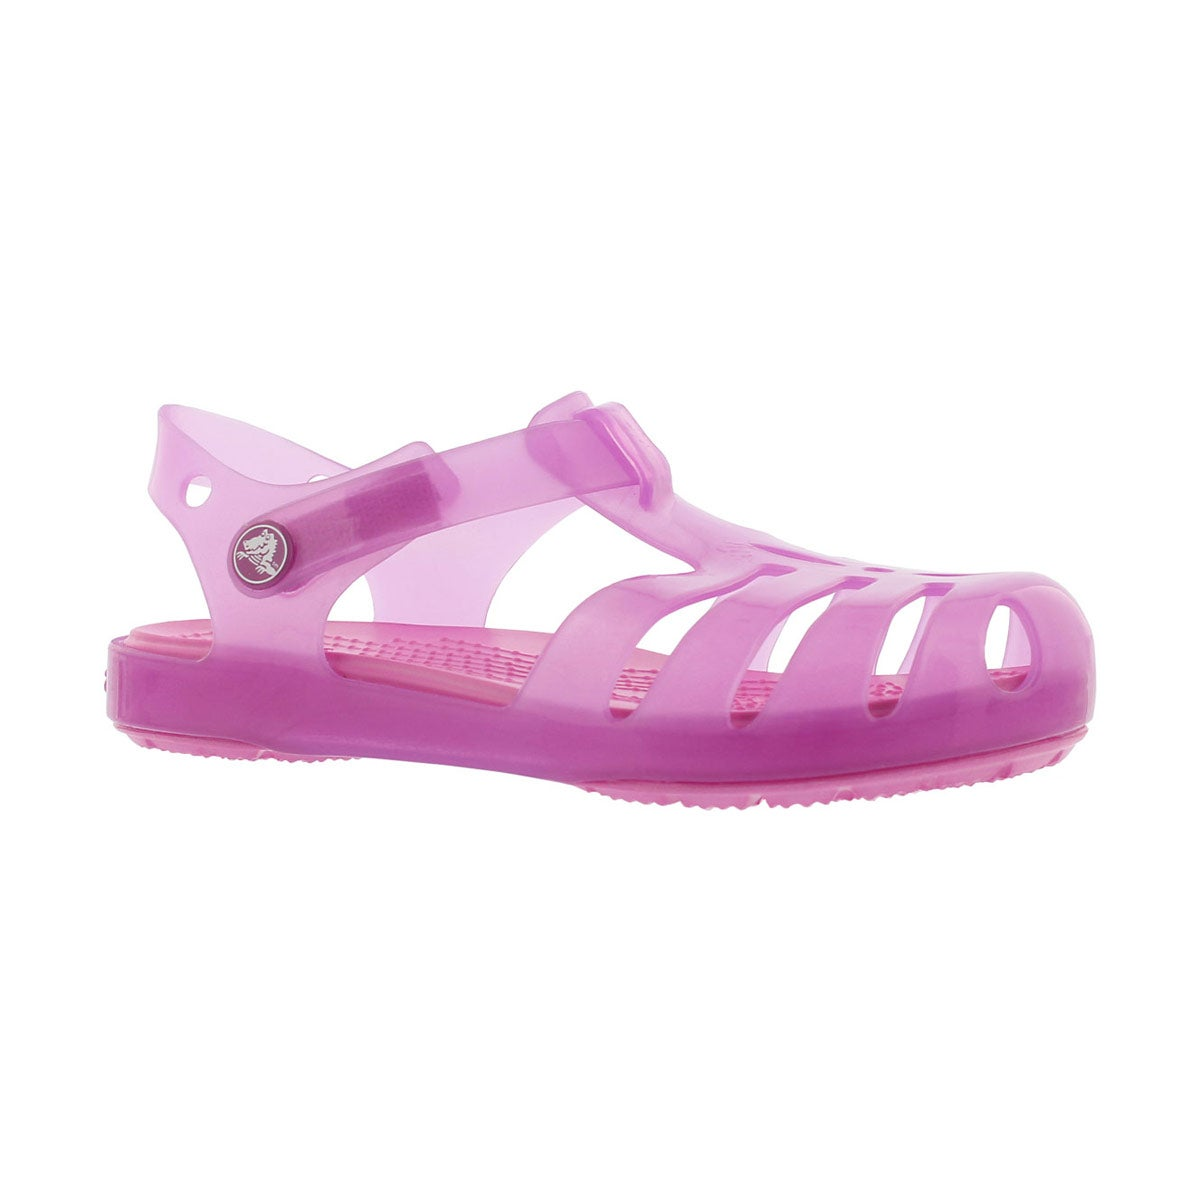 Girls' ISABELLA wild orchid casual sandals